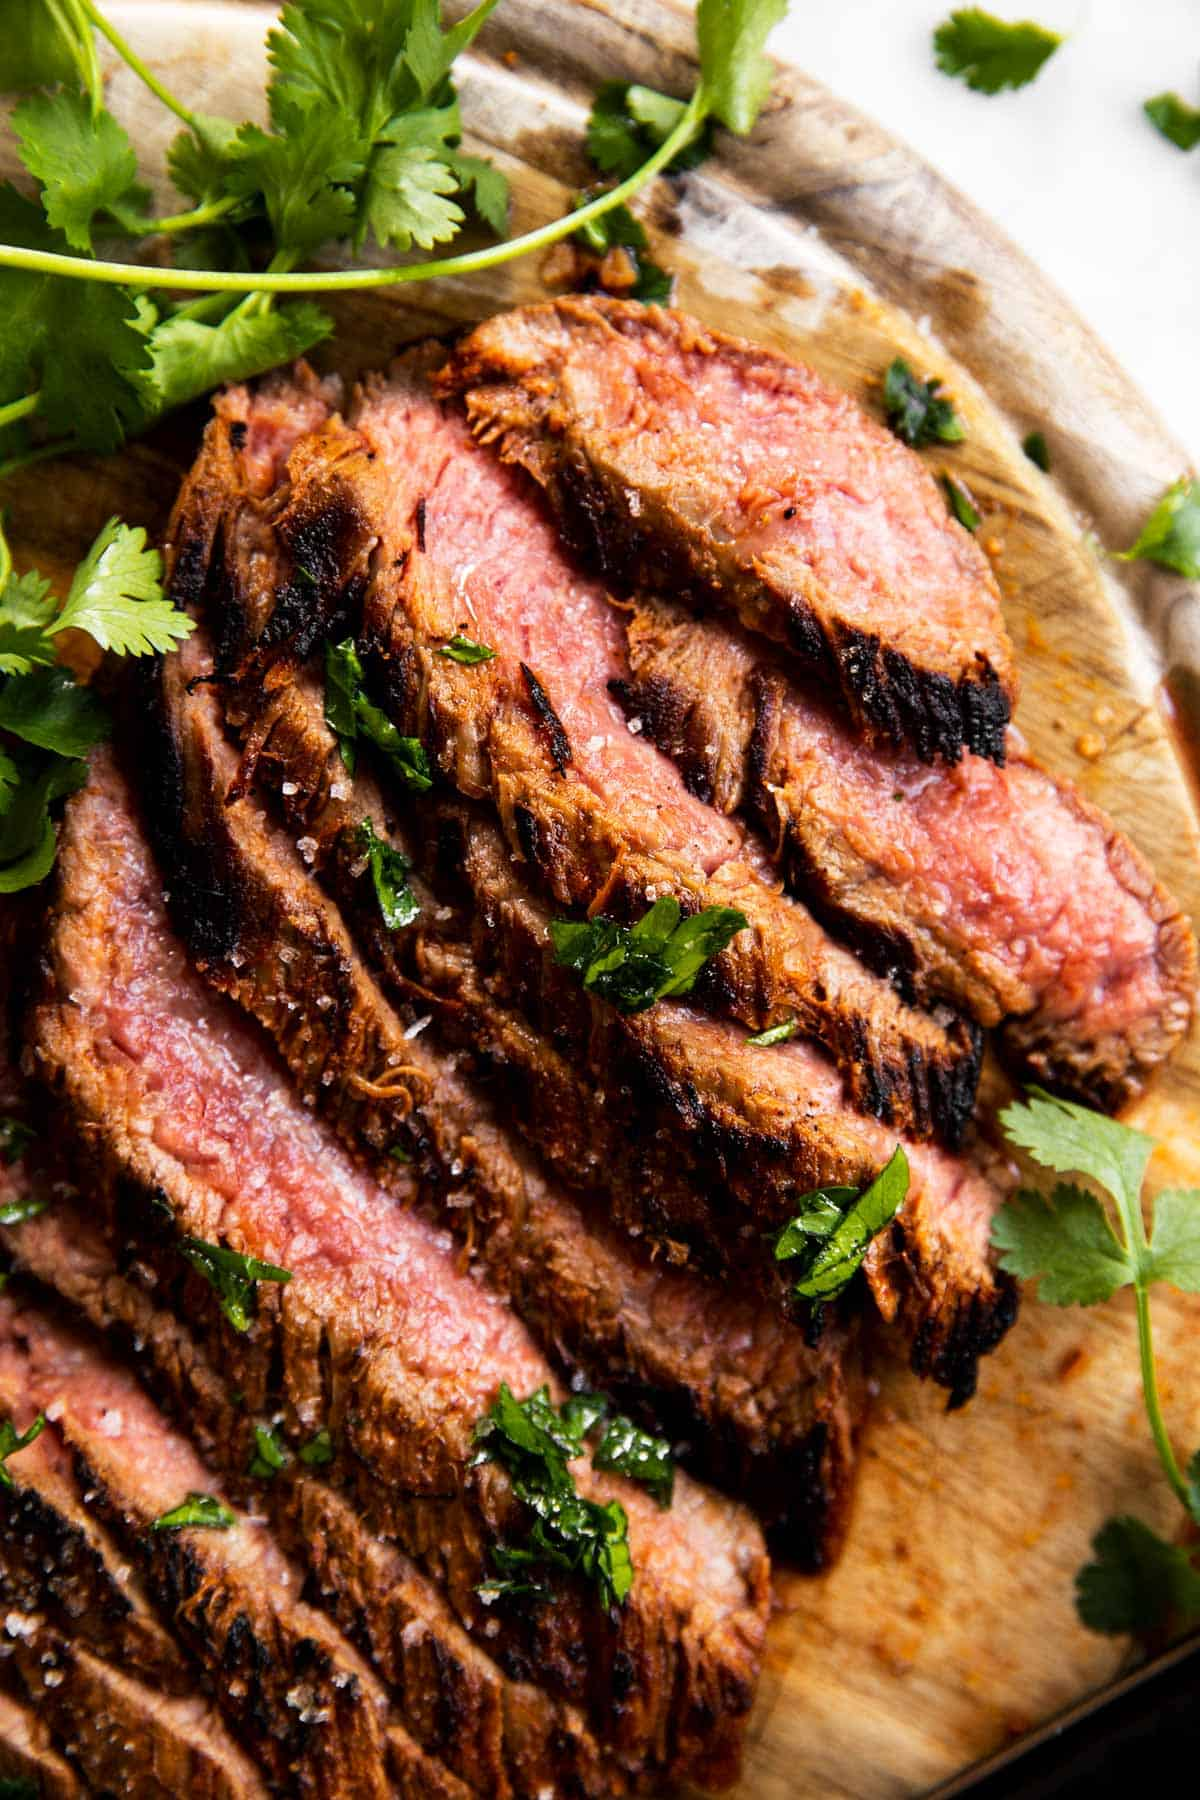 close up photo of sliced flank steak on wooden board with fresh herbs